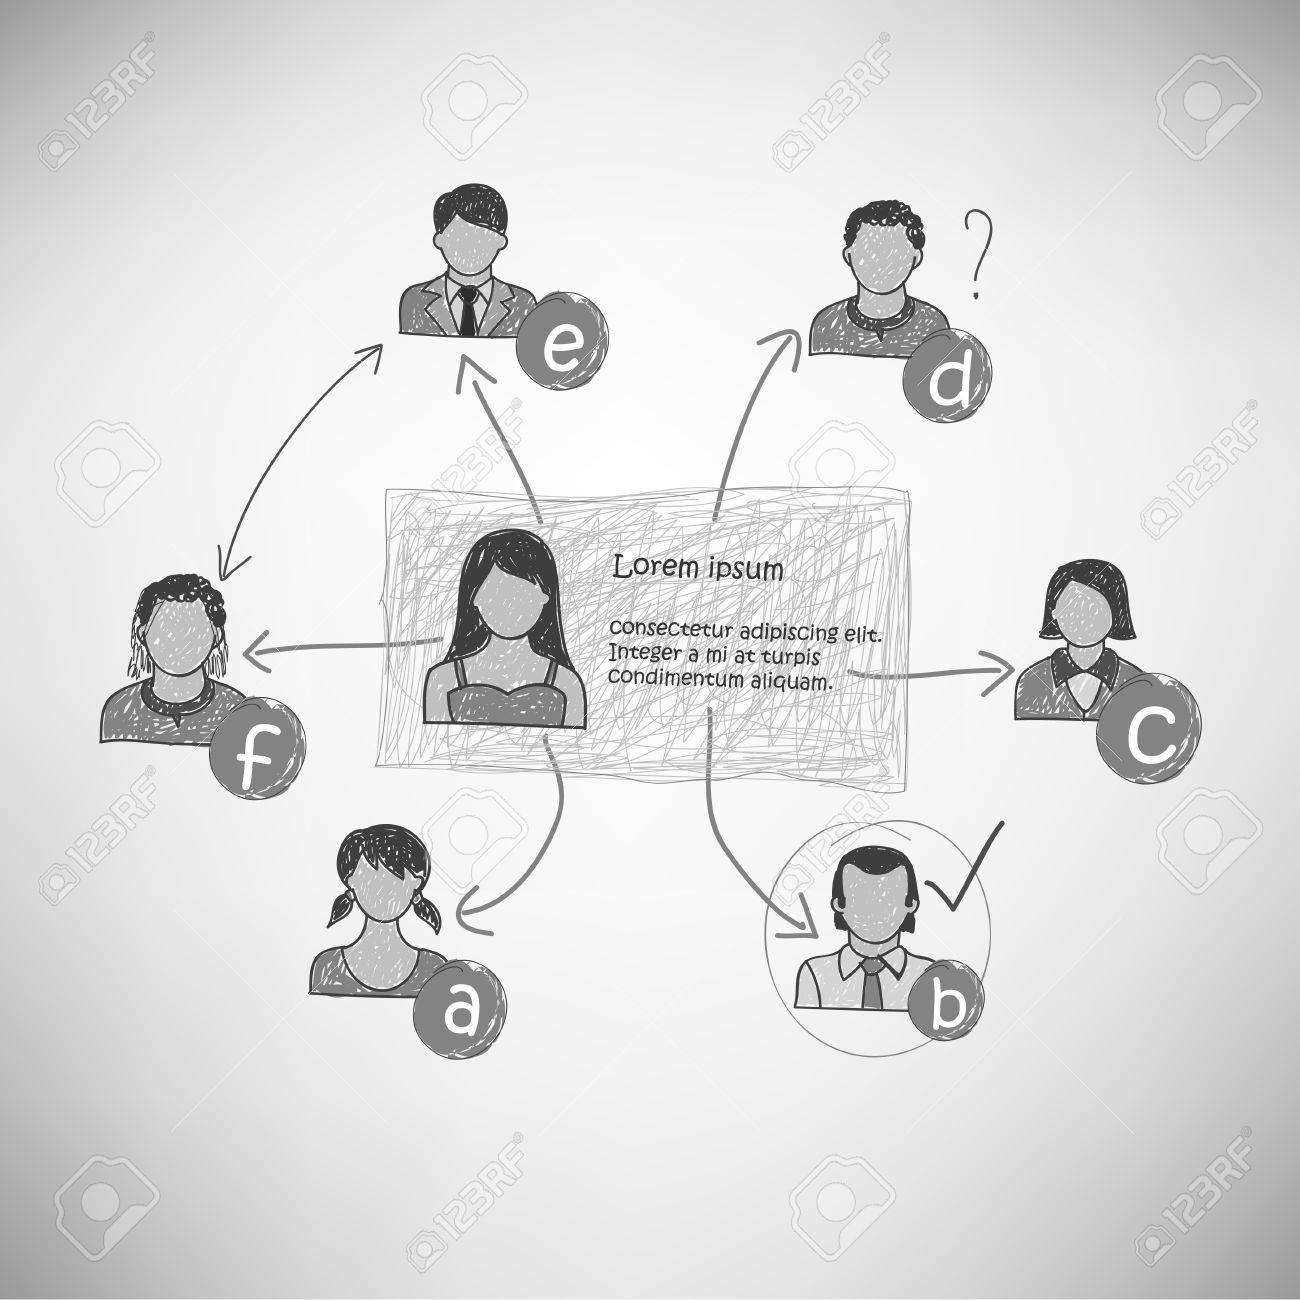 Hand-drawn people connections Stock Vector - 17660501